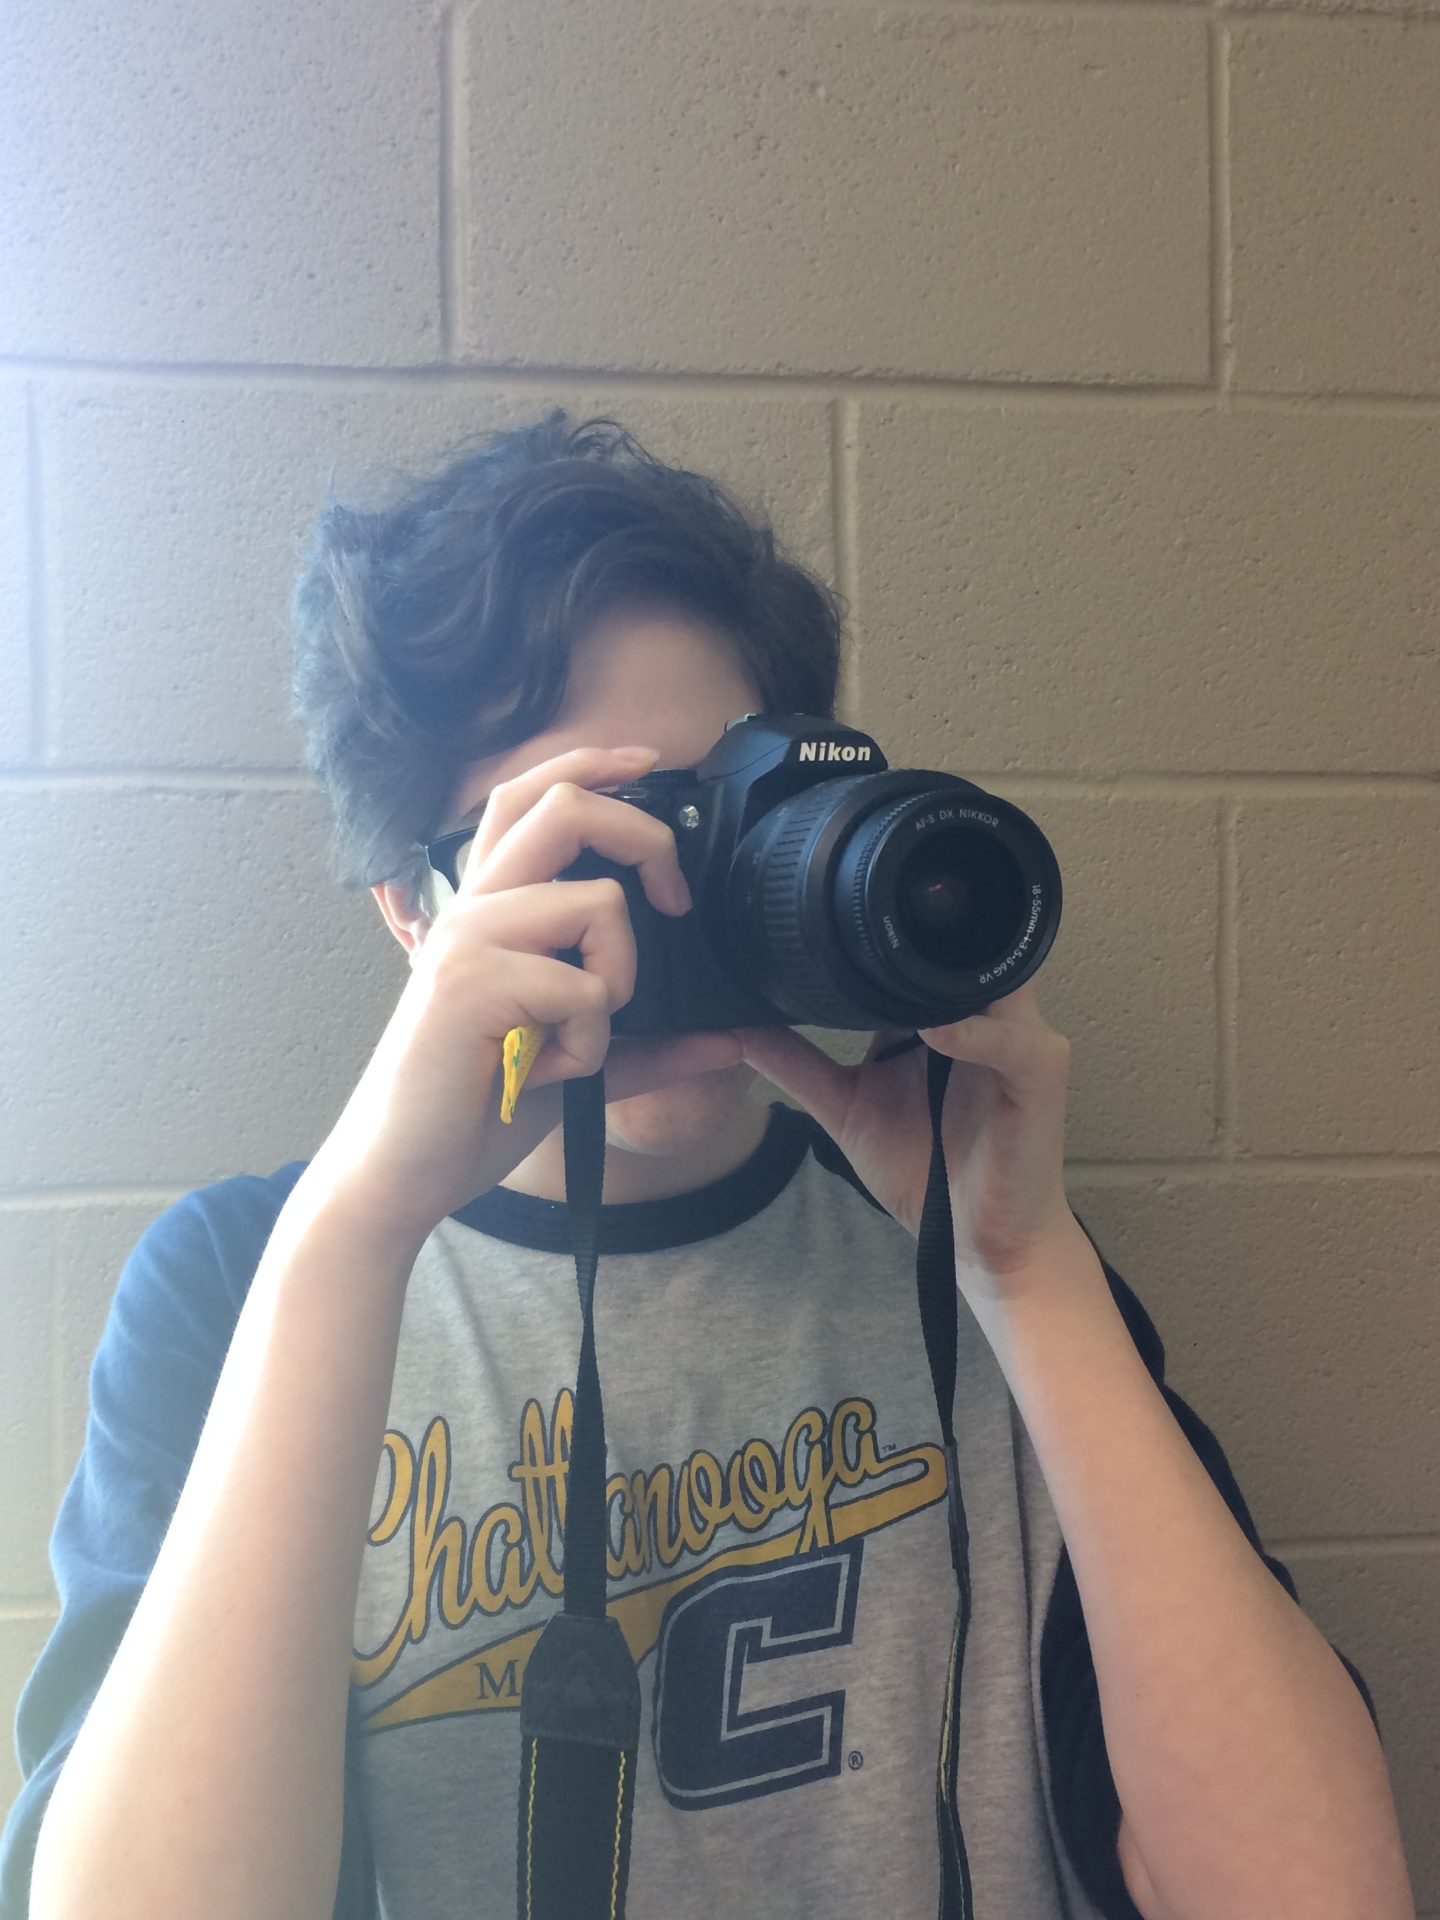 Charity Goode shows off some of her photography skills for prom.